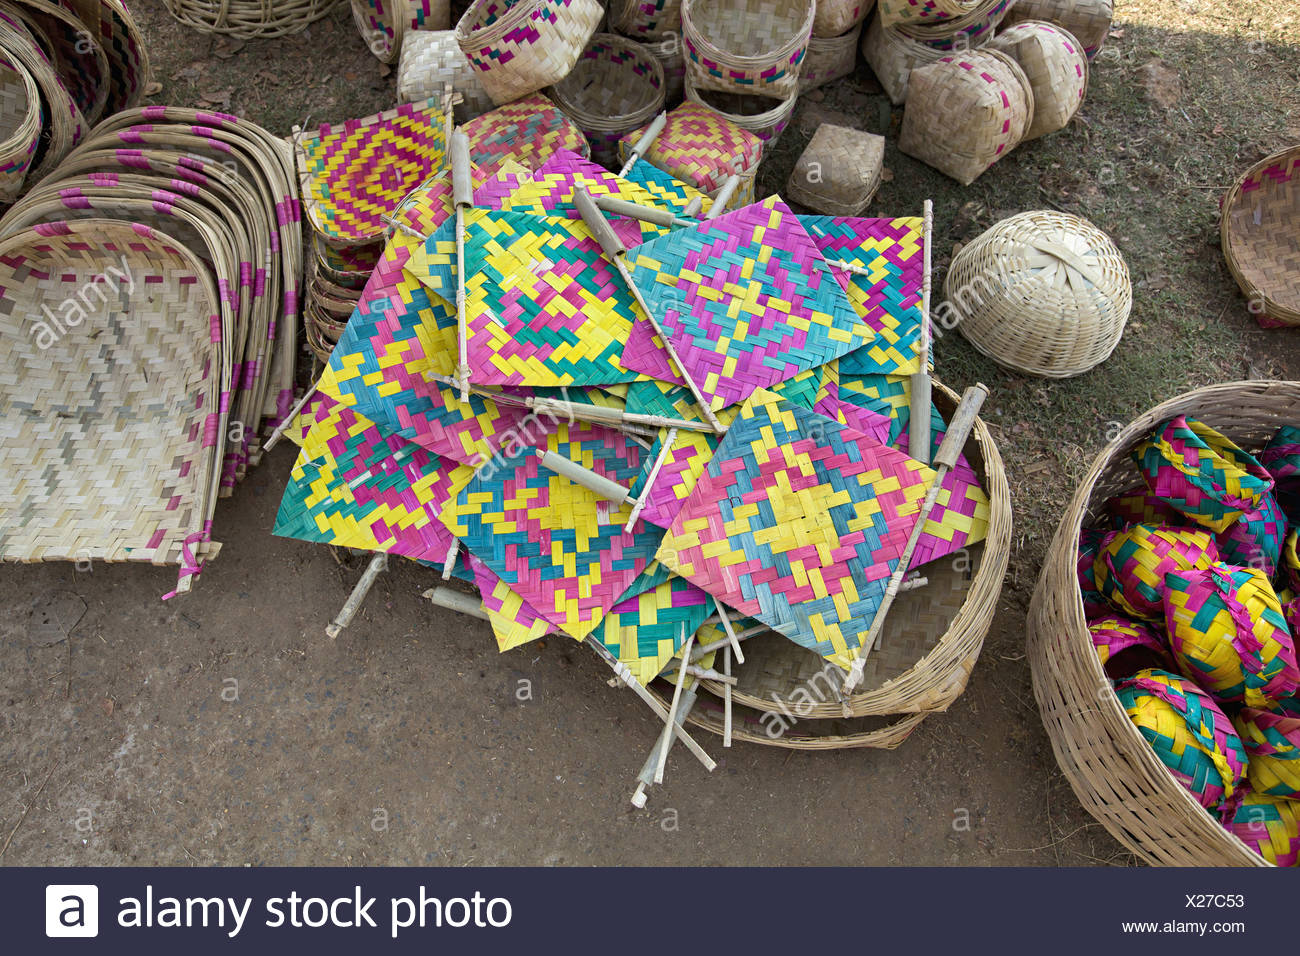 773cee8227c49 Bamboo Fans Stock Photos   Bamboo Fans Stock Images - Alamy